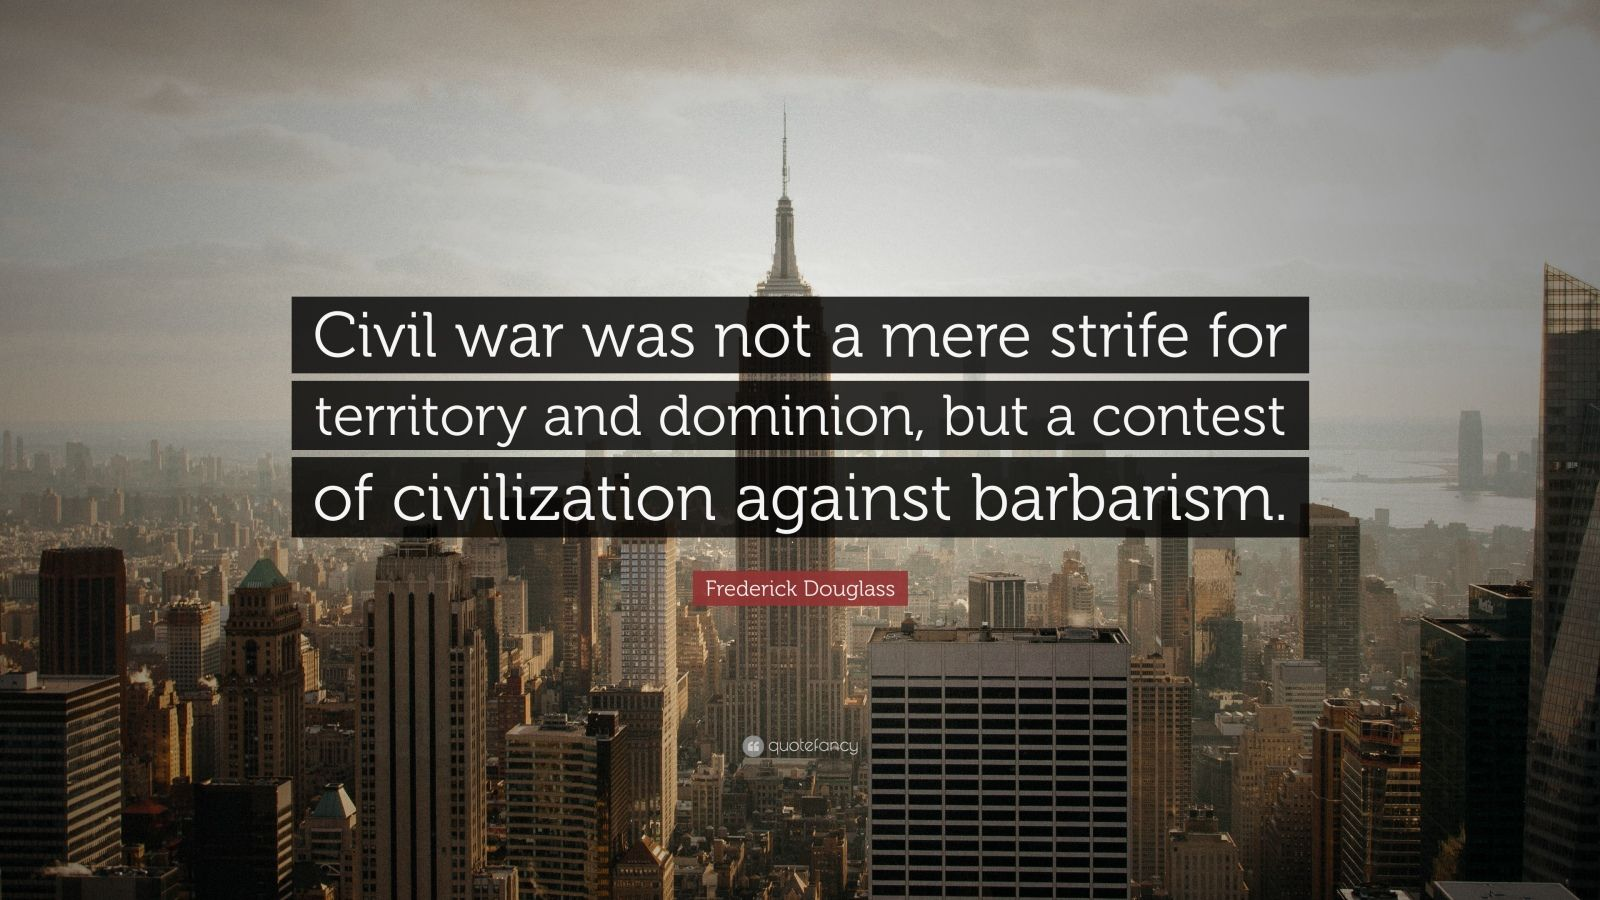 """Frederick Douglass Quote: """"Civil war was not a mere strife for territory and dominion, but a contest of civilization against barbarism."""""""